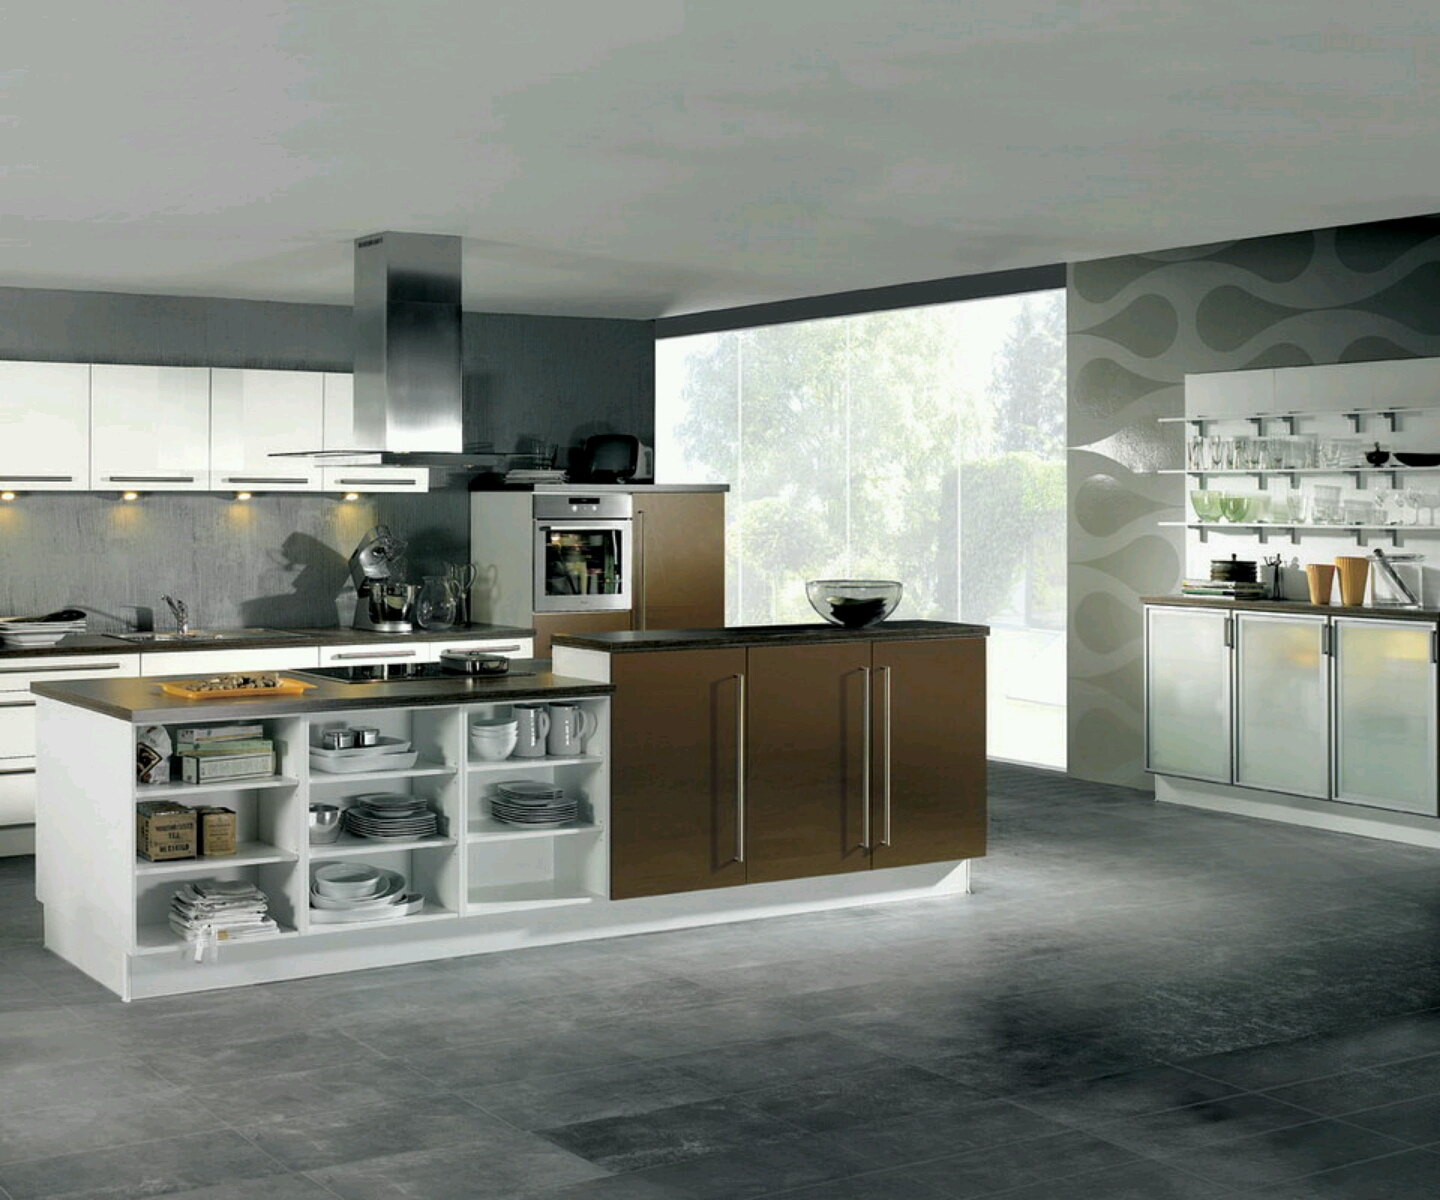 New home designs latest ultra modern kitchen designs ideas for Kitchen ideas design